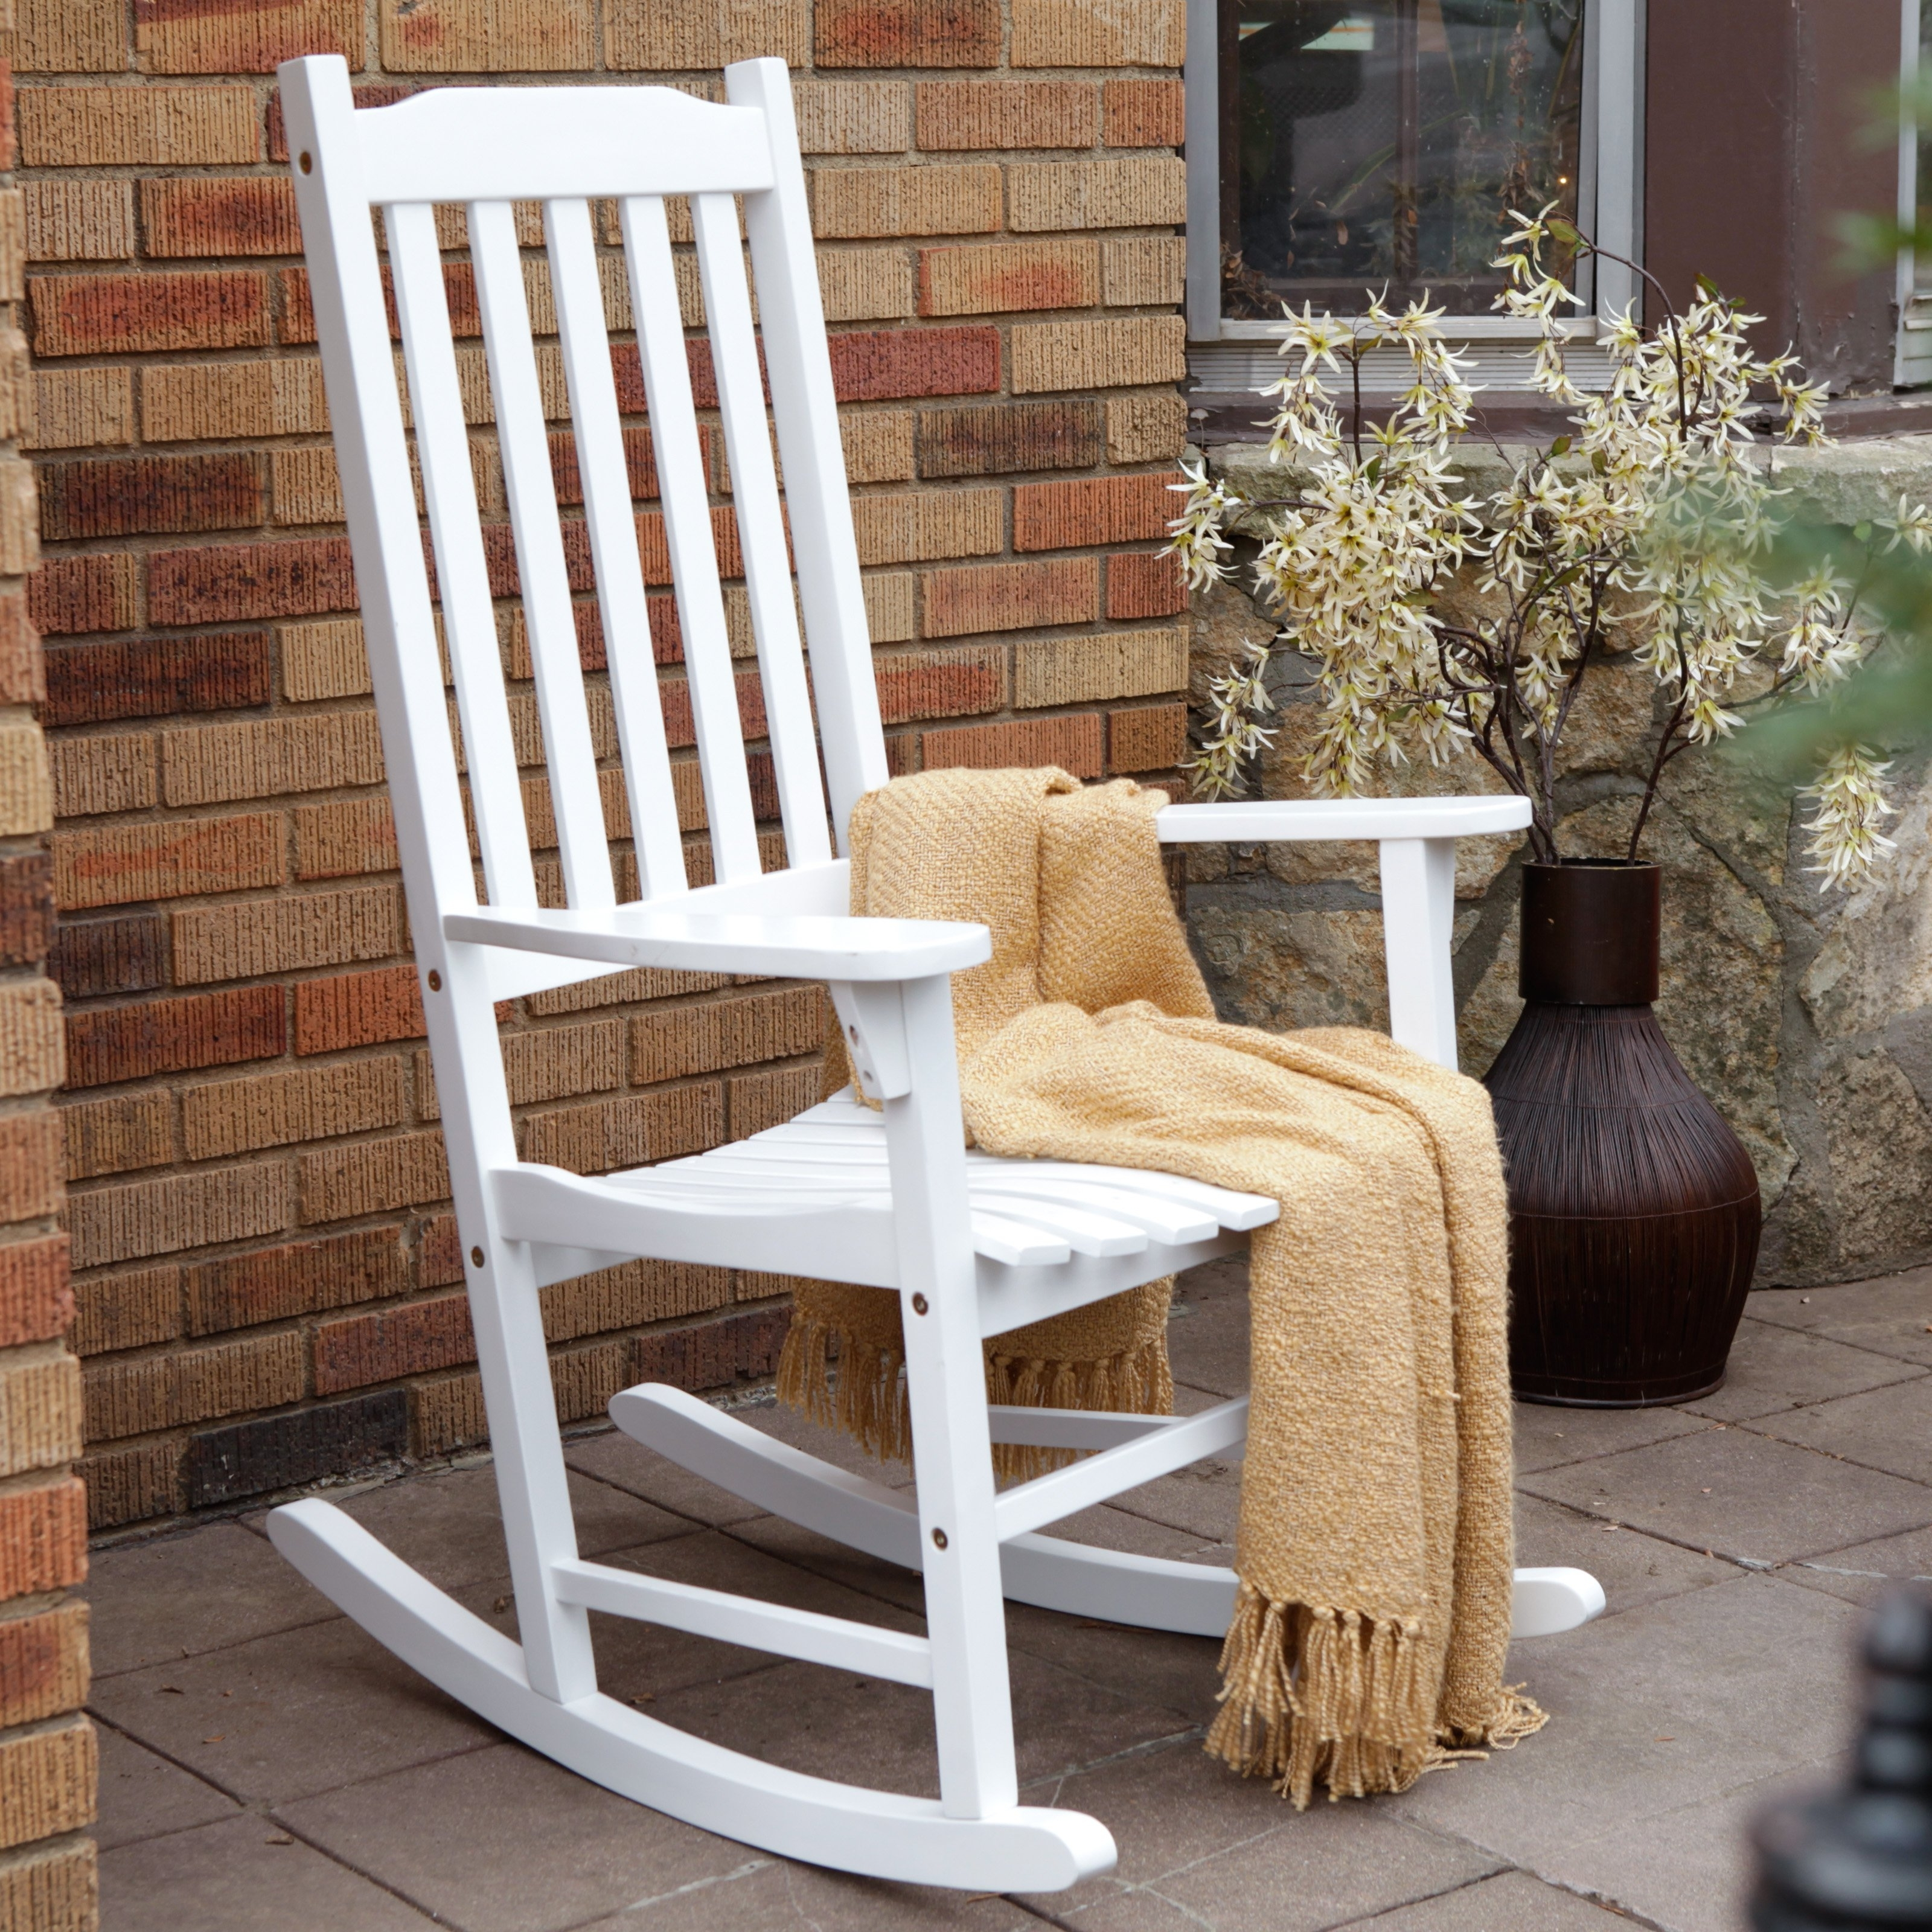 Rocking Chair Outdoor Wooden Intended For Recent Coral Coast Indoor/outdoor Mission Slat Rocking Chair – White (View 11 of 15)